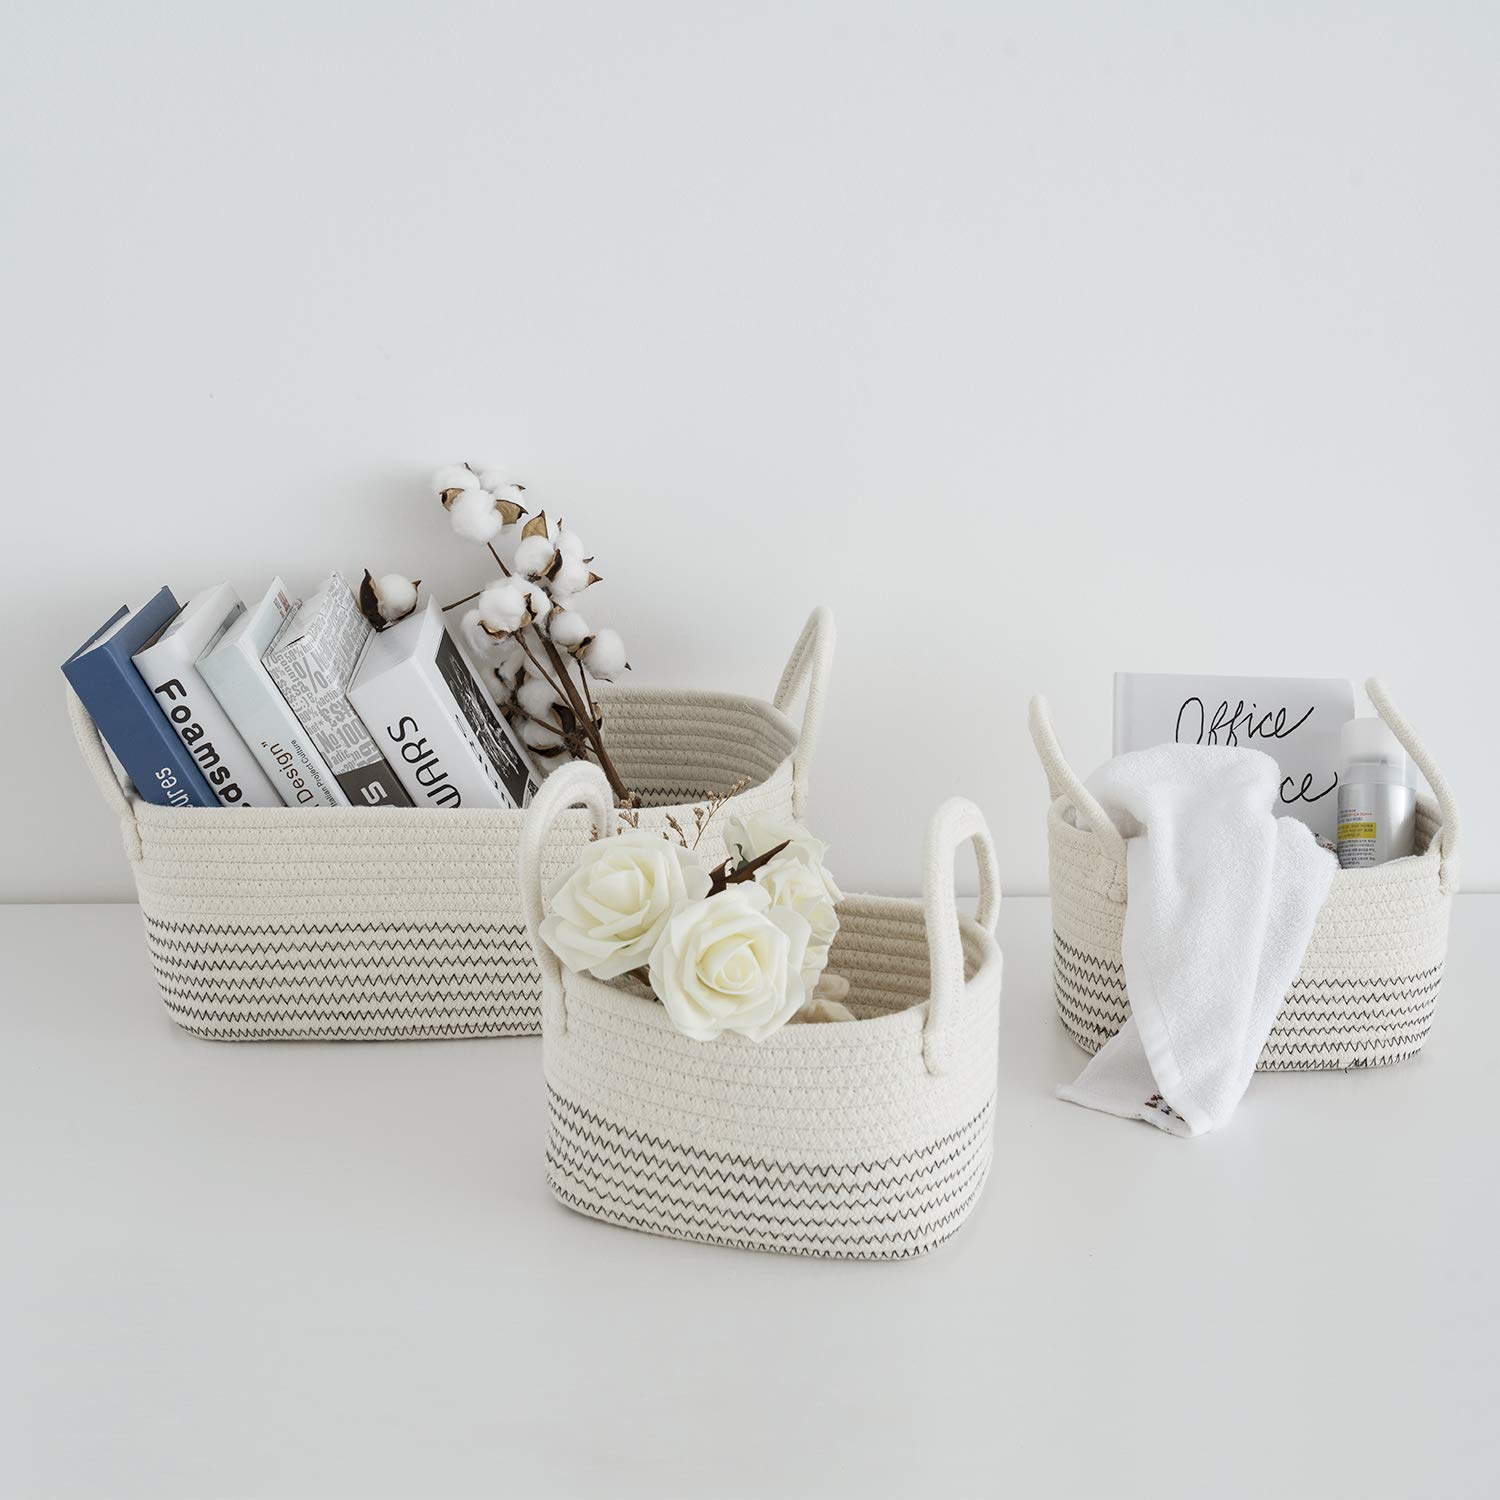 Cotton Rope Storage Baskets Storage Bins Organizer Decorative Woven Basket With Handles for Nursery Baby Clothes, Toy, Makeup, Books, Set of 3 by UBBCARE